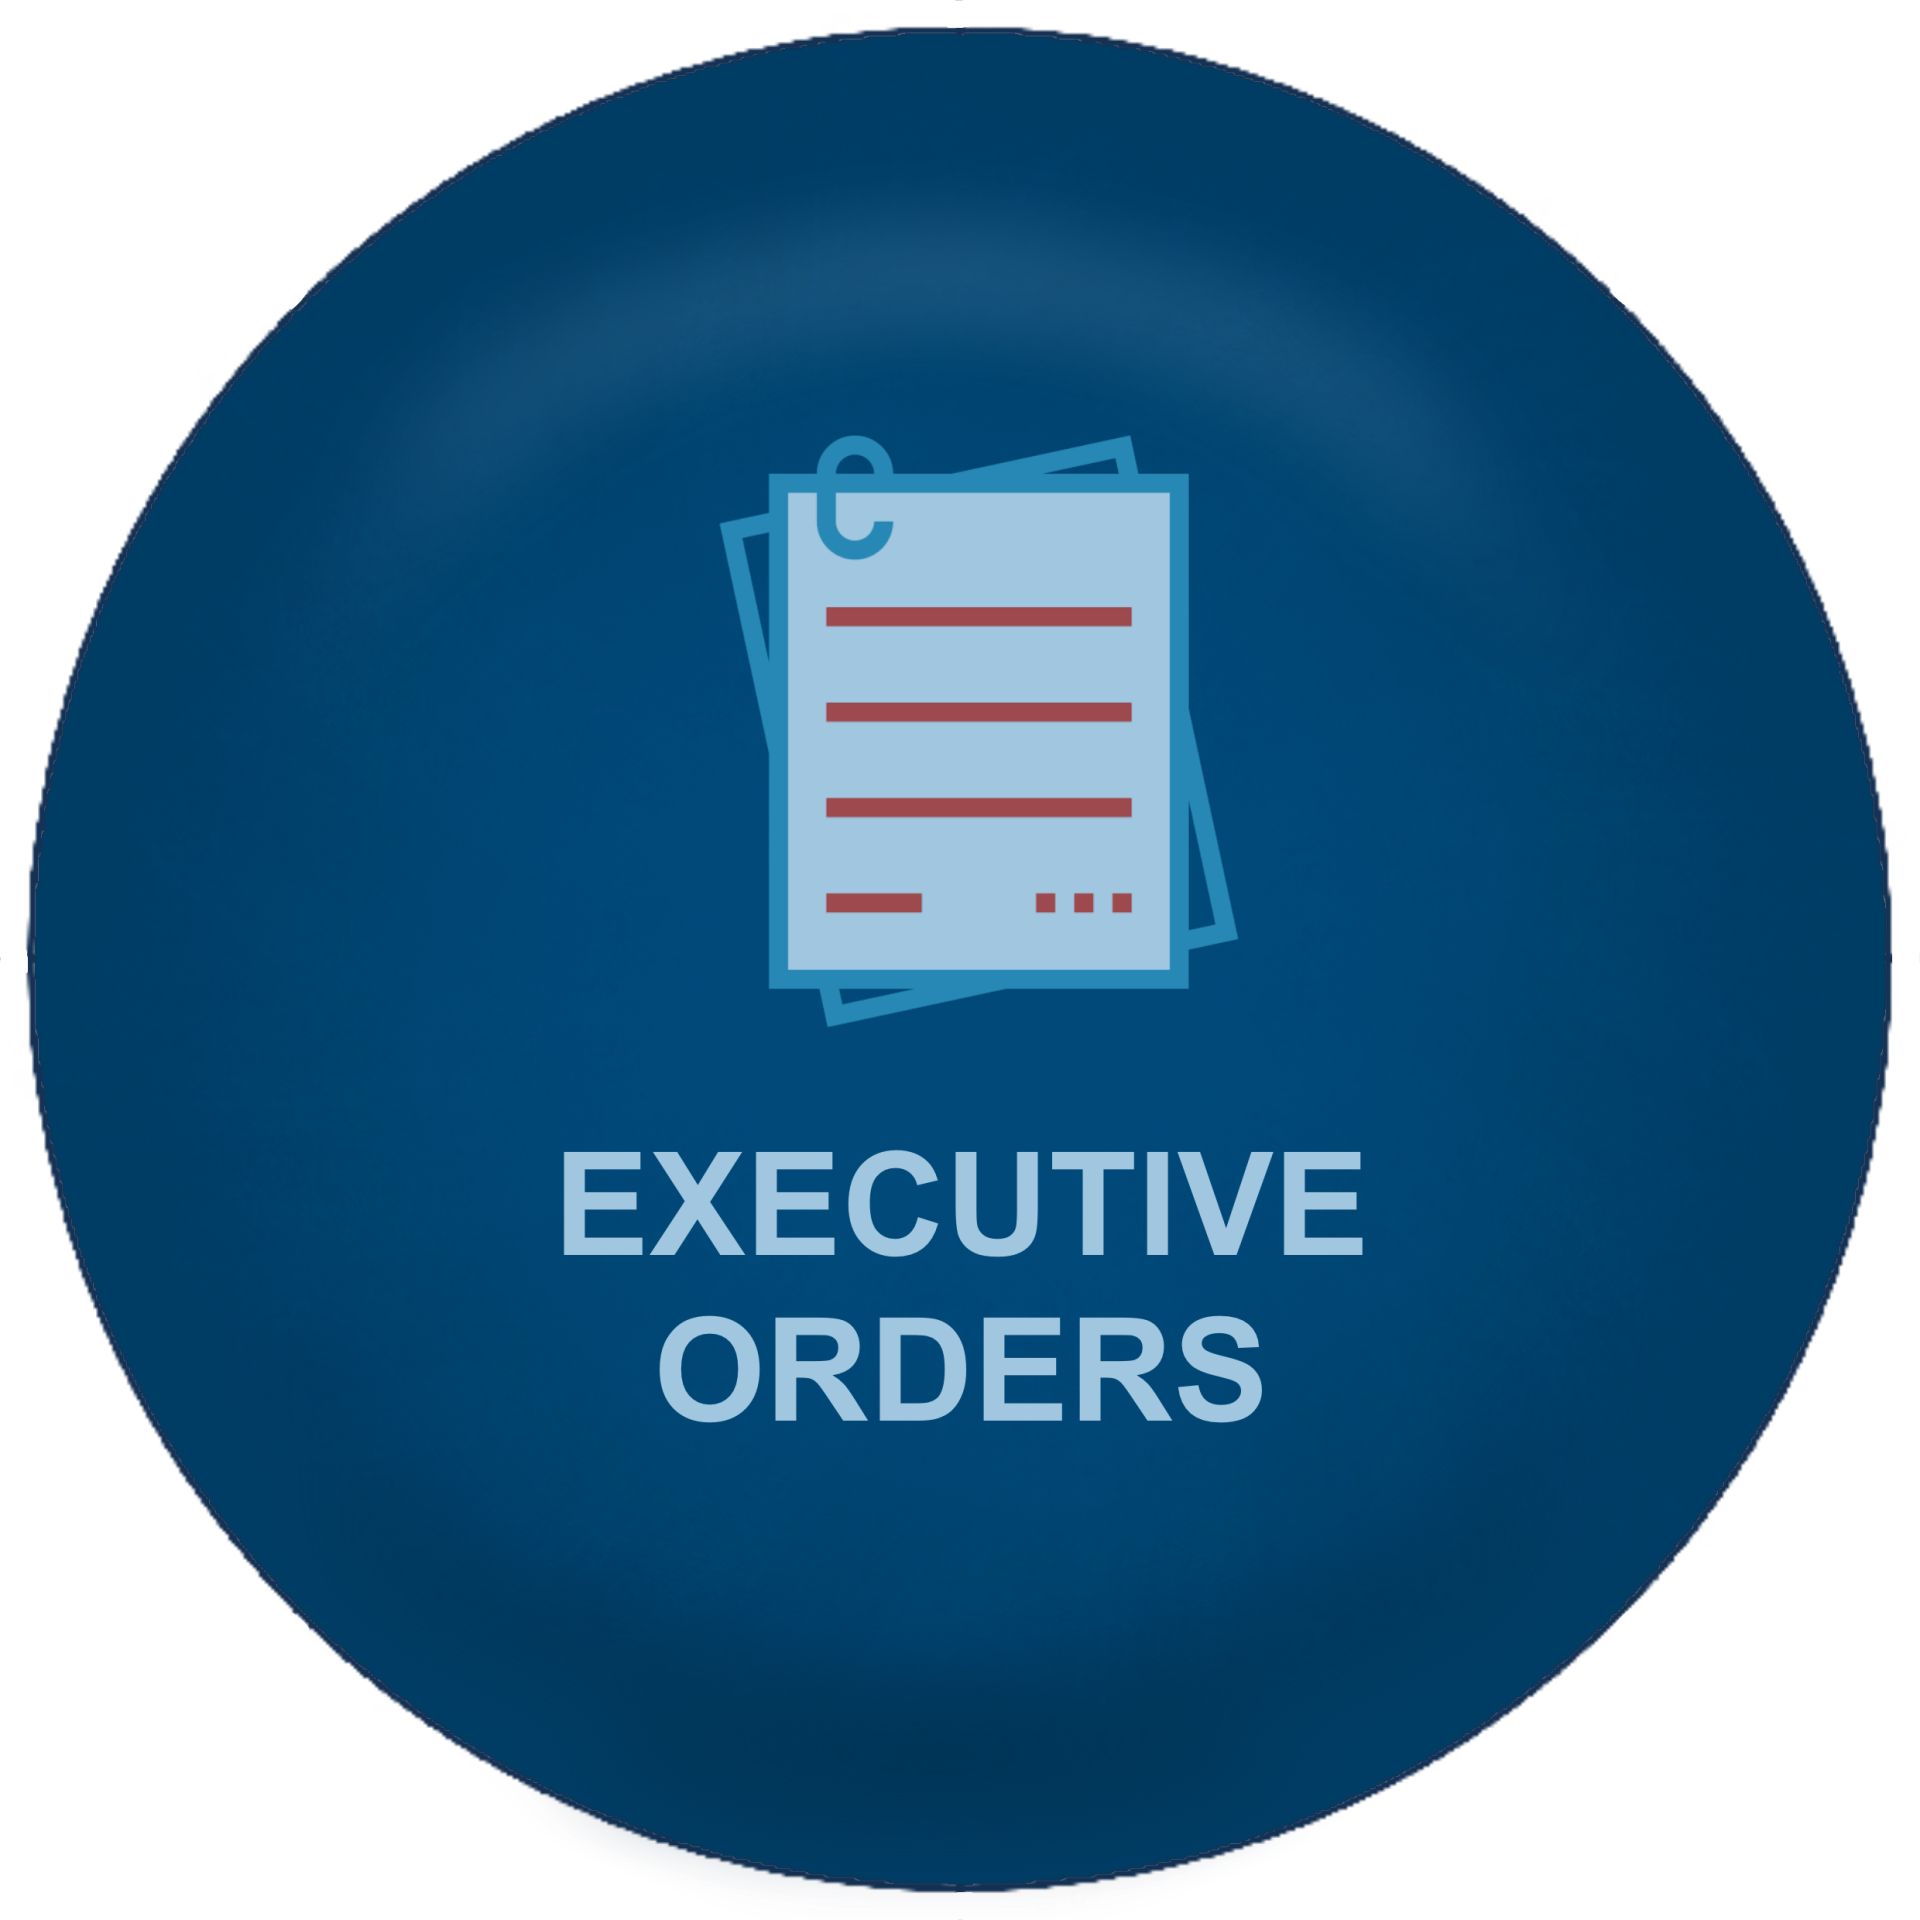 ExecutiveOrders